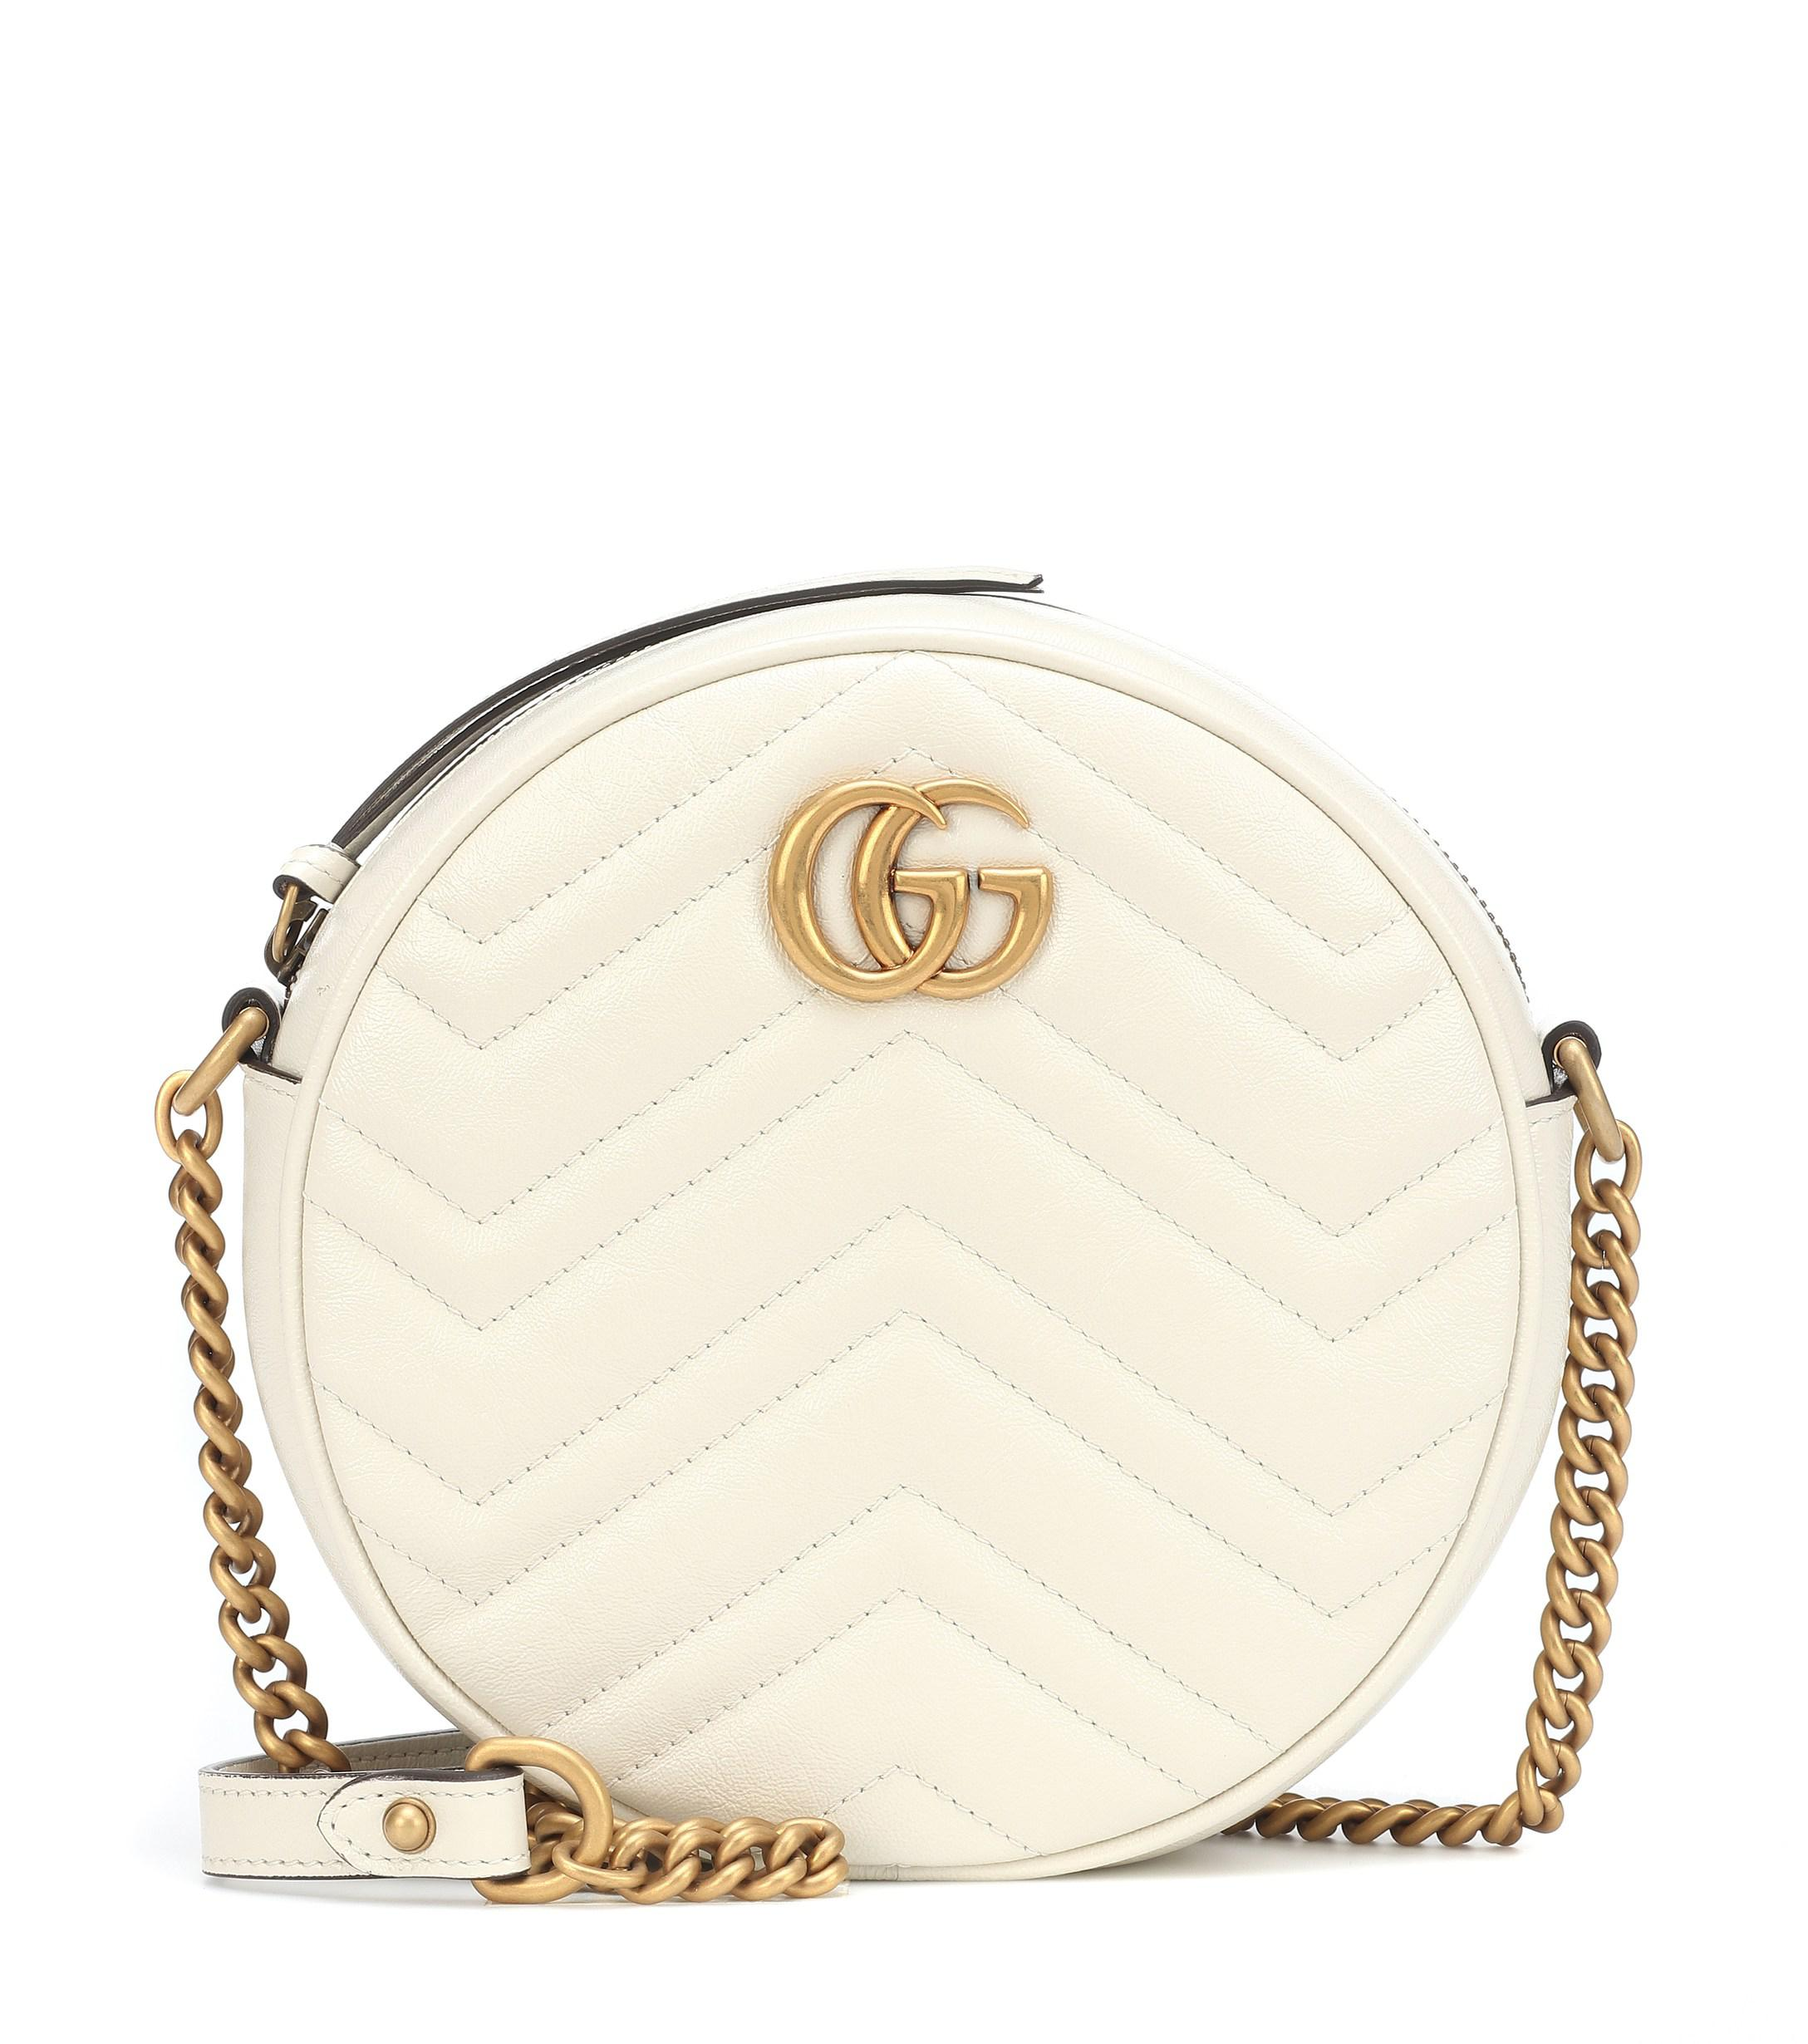 9878c841b24 Lyst - Gucci GG Marmont Mini Leather Shoulder Bag in White